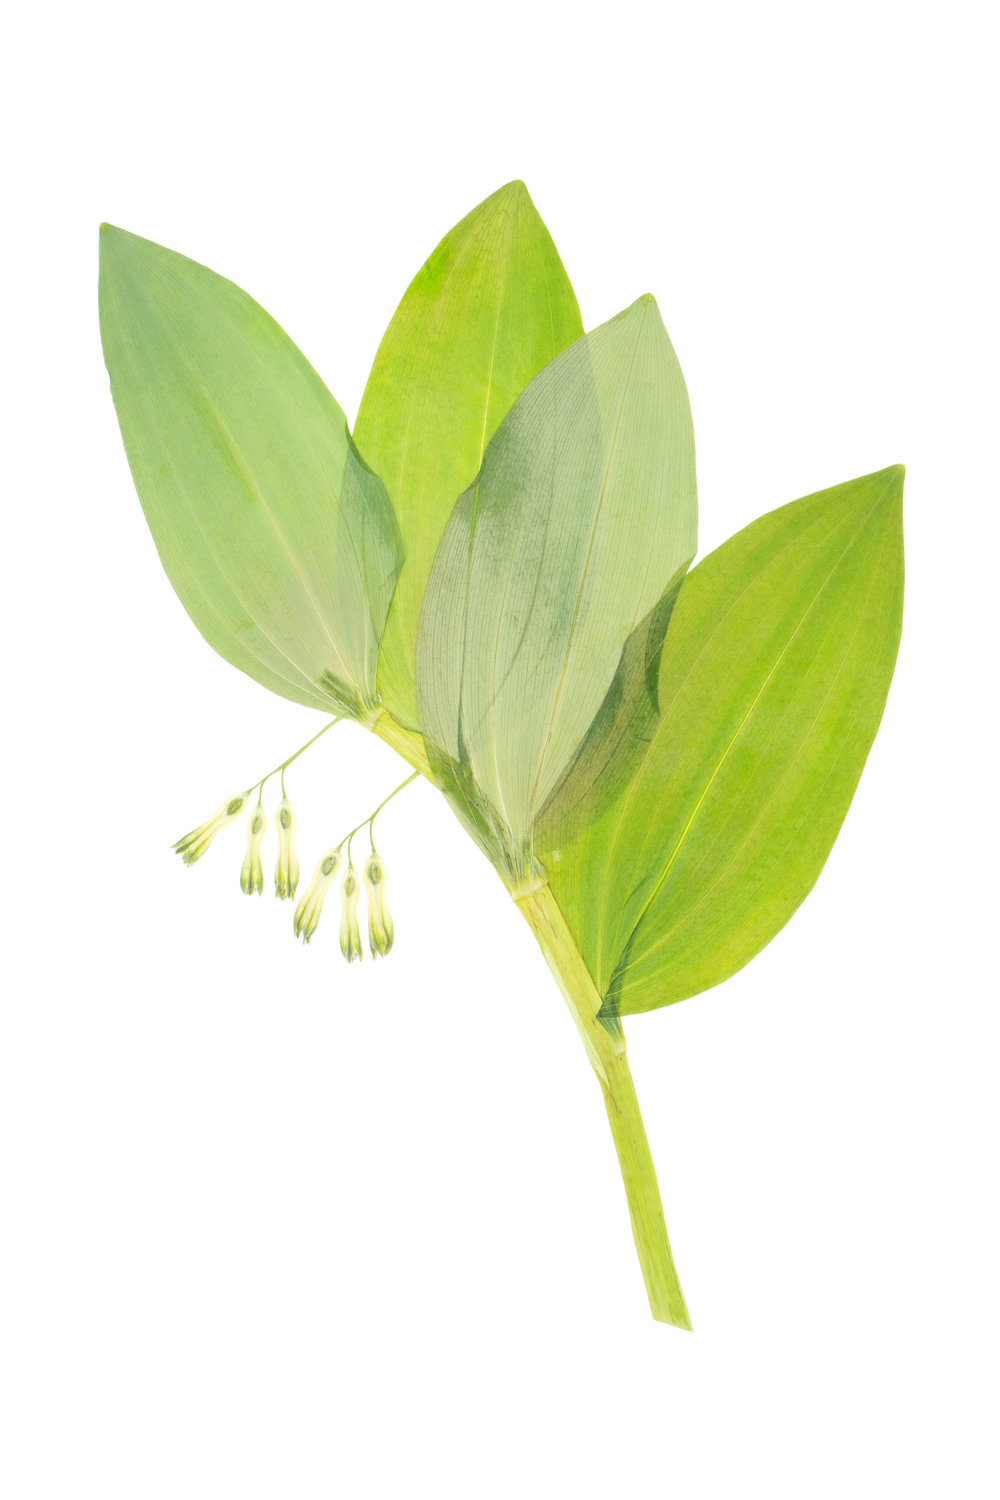 Solomon's Seal / Polygonatum multiflorum